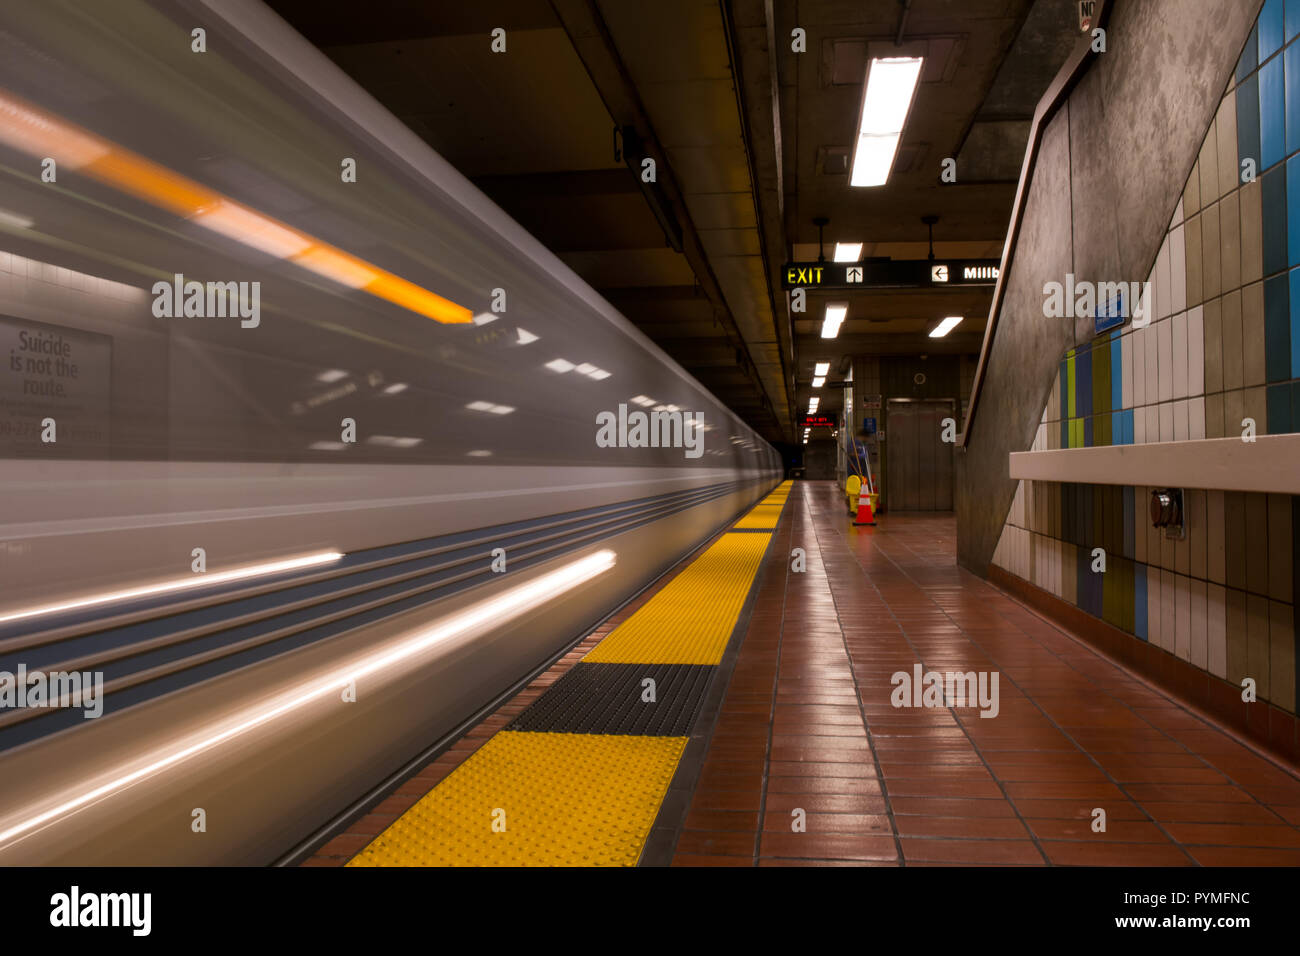 Subway train passing by with high speed motion blur long exposure in the San Francisco Bay Area - Stock Image